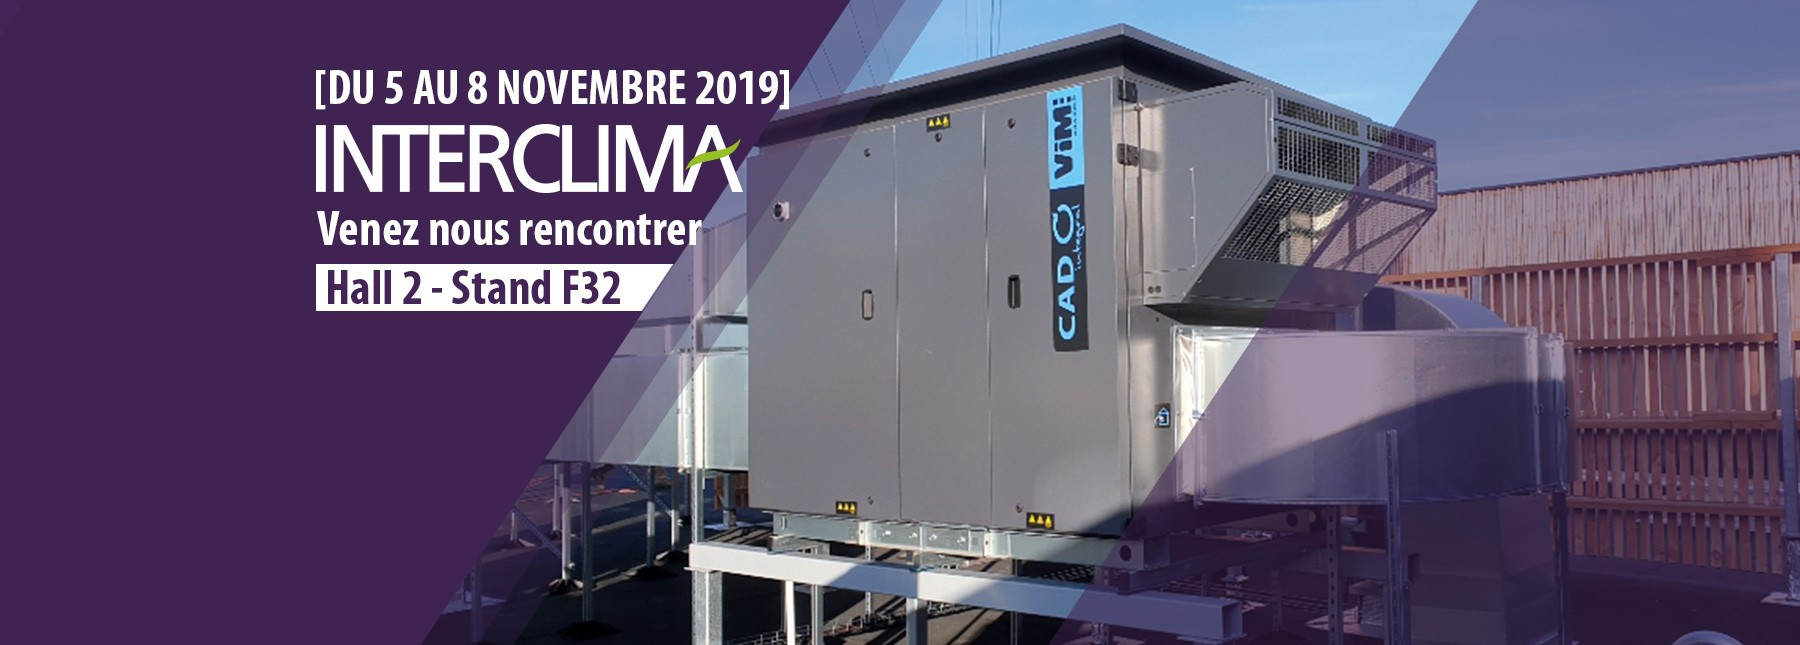 VIM expose au salon INTERCLIMA 2019